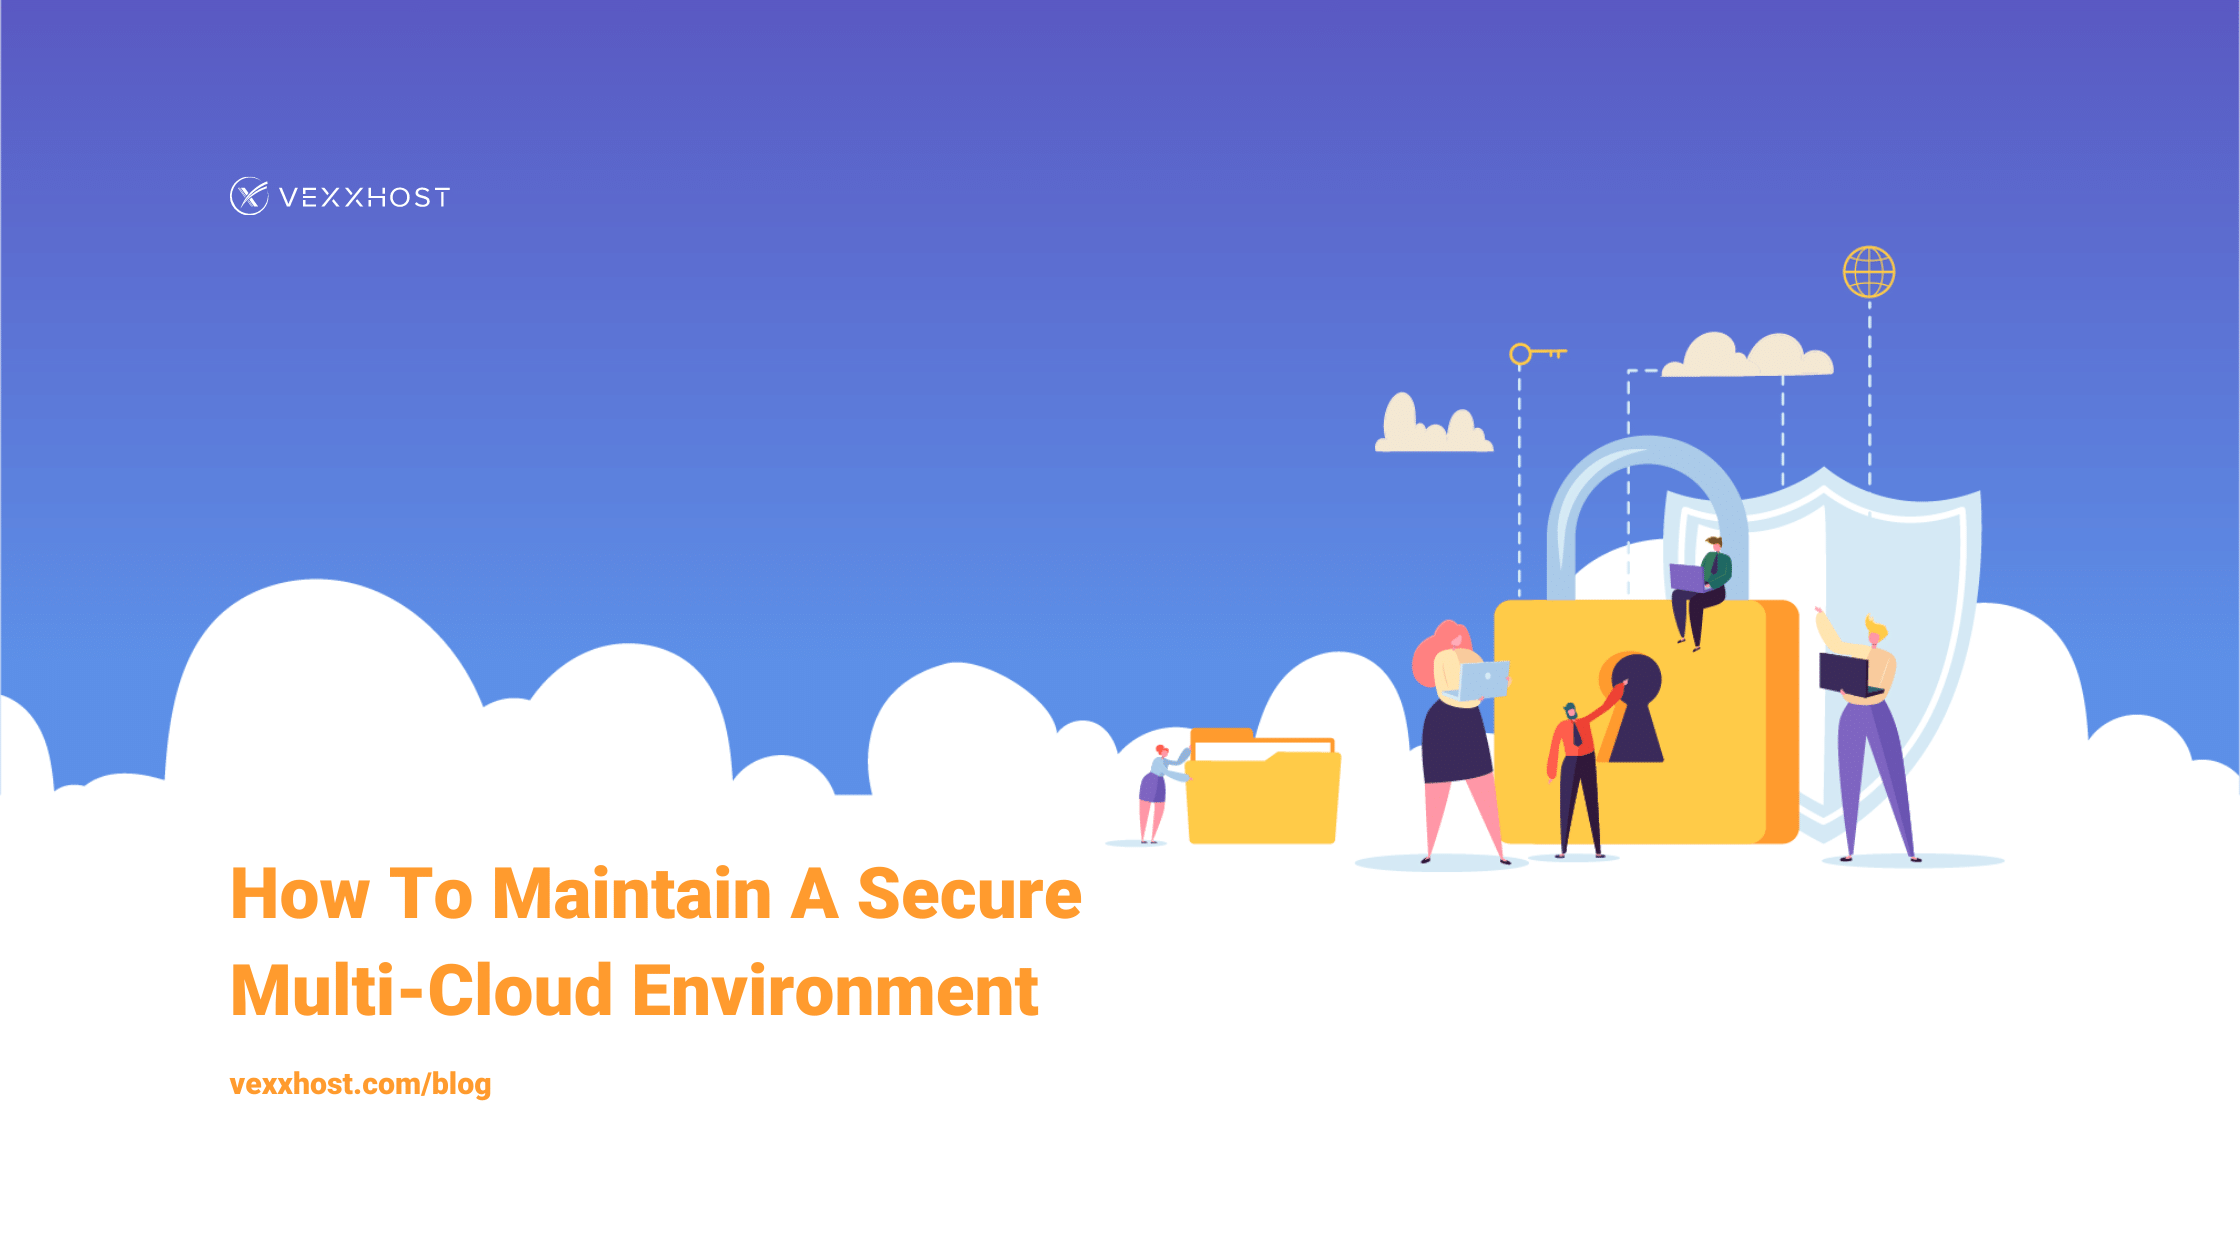 How To Maintain A Secure Multi-Cloud Environment